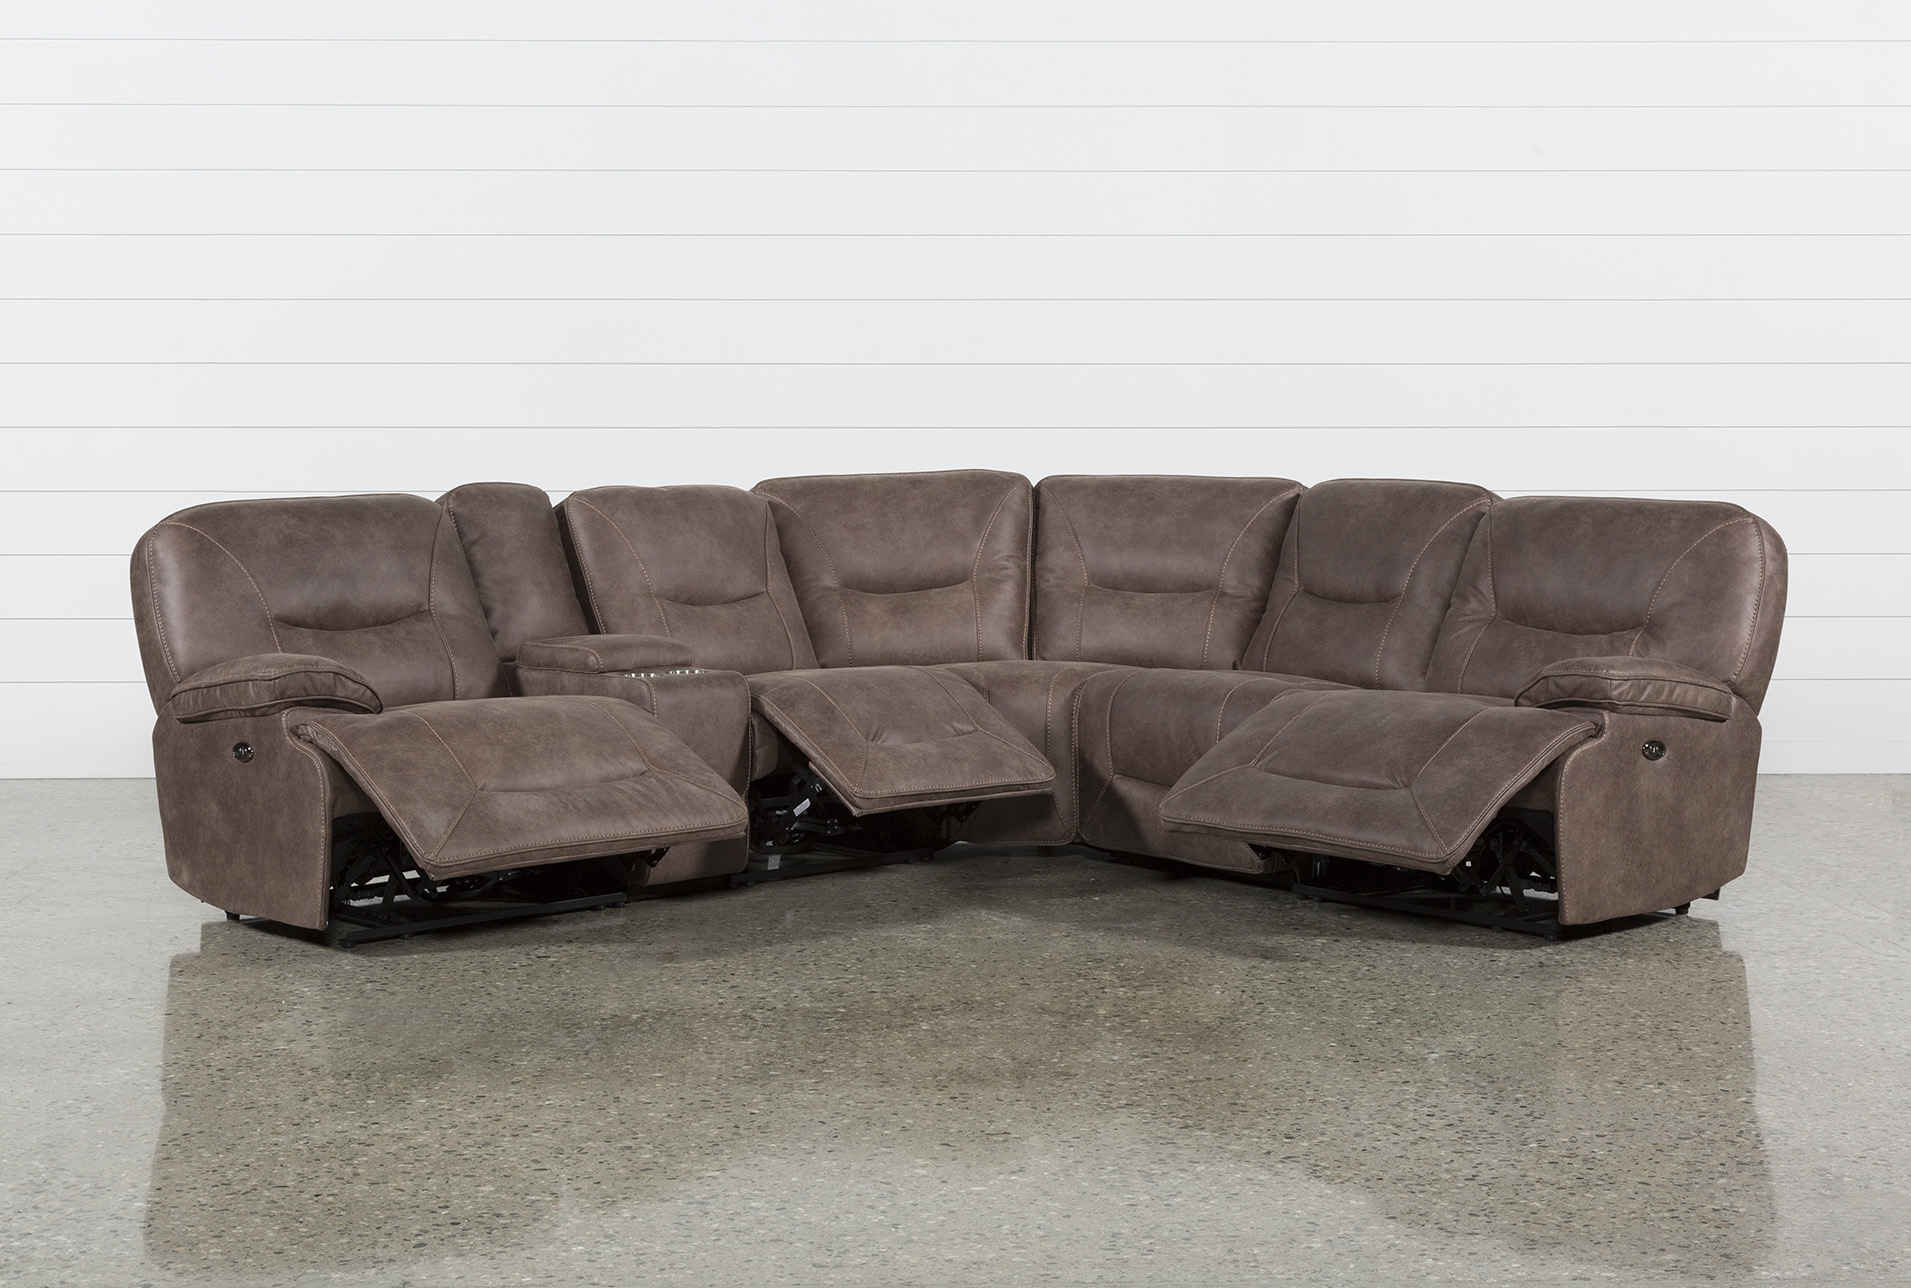 Jackson 6 Piece Power Reclining Sectional Within Jackson 6 Piece Power Reclining Sectionals (Image 14 of 25)